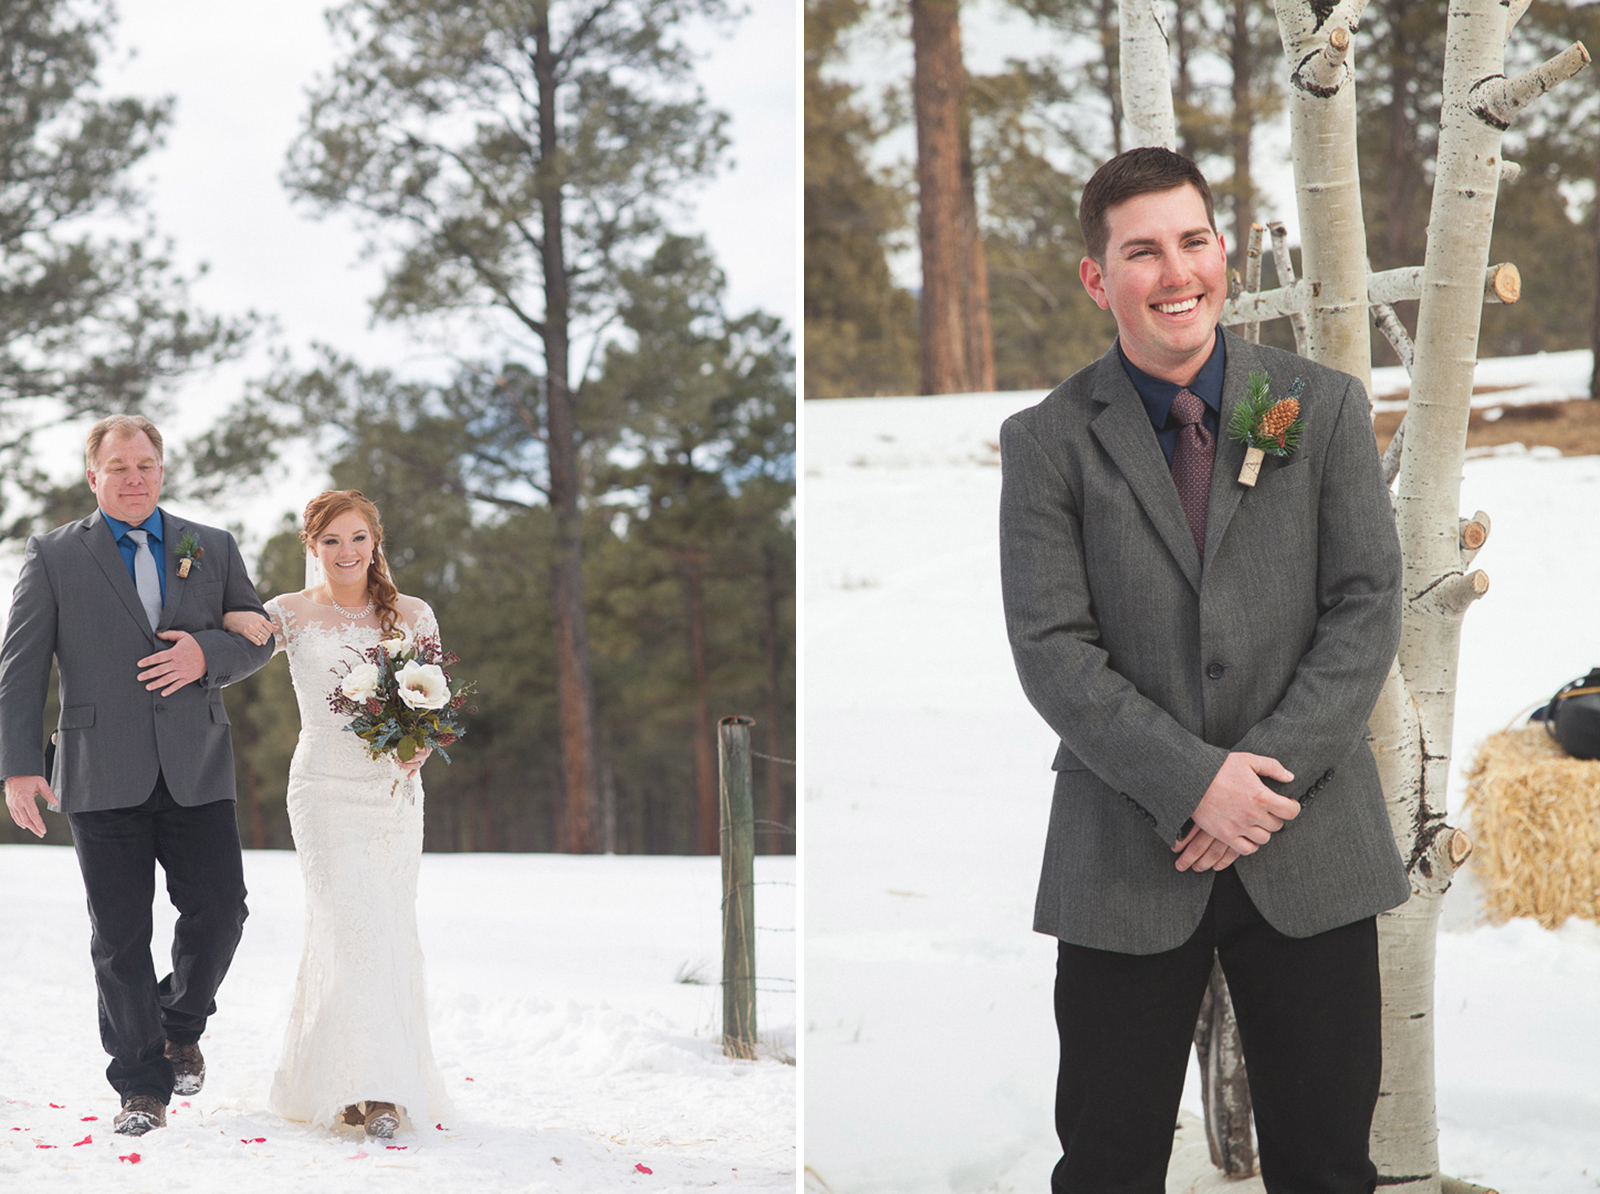 091-wedding-ceremony-in-pagosa-springs-wedding-photographer-snow-winter-wedding